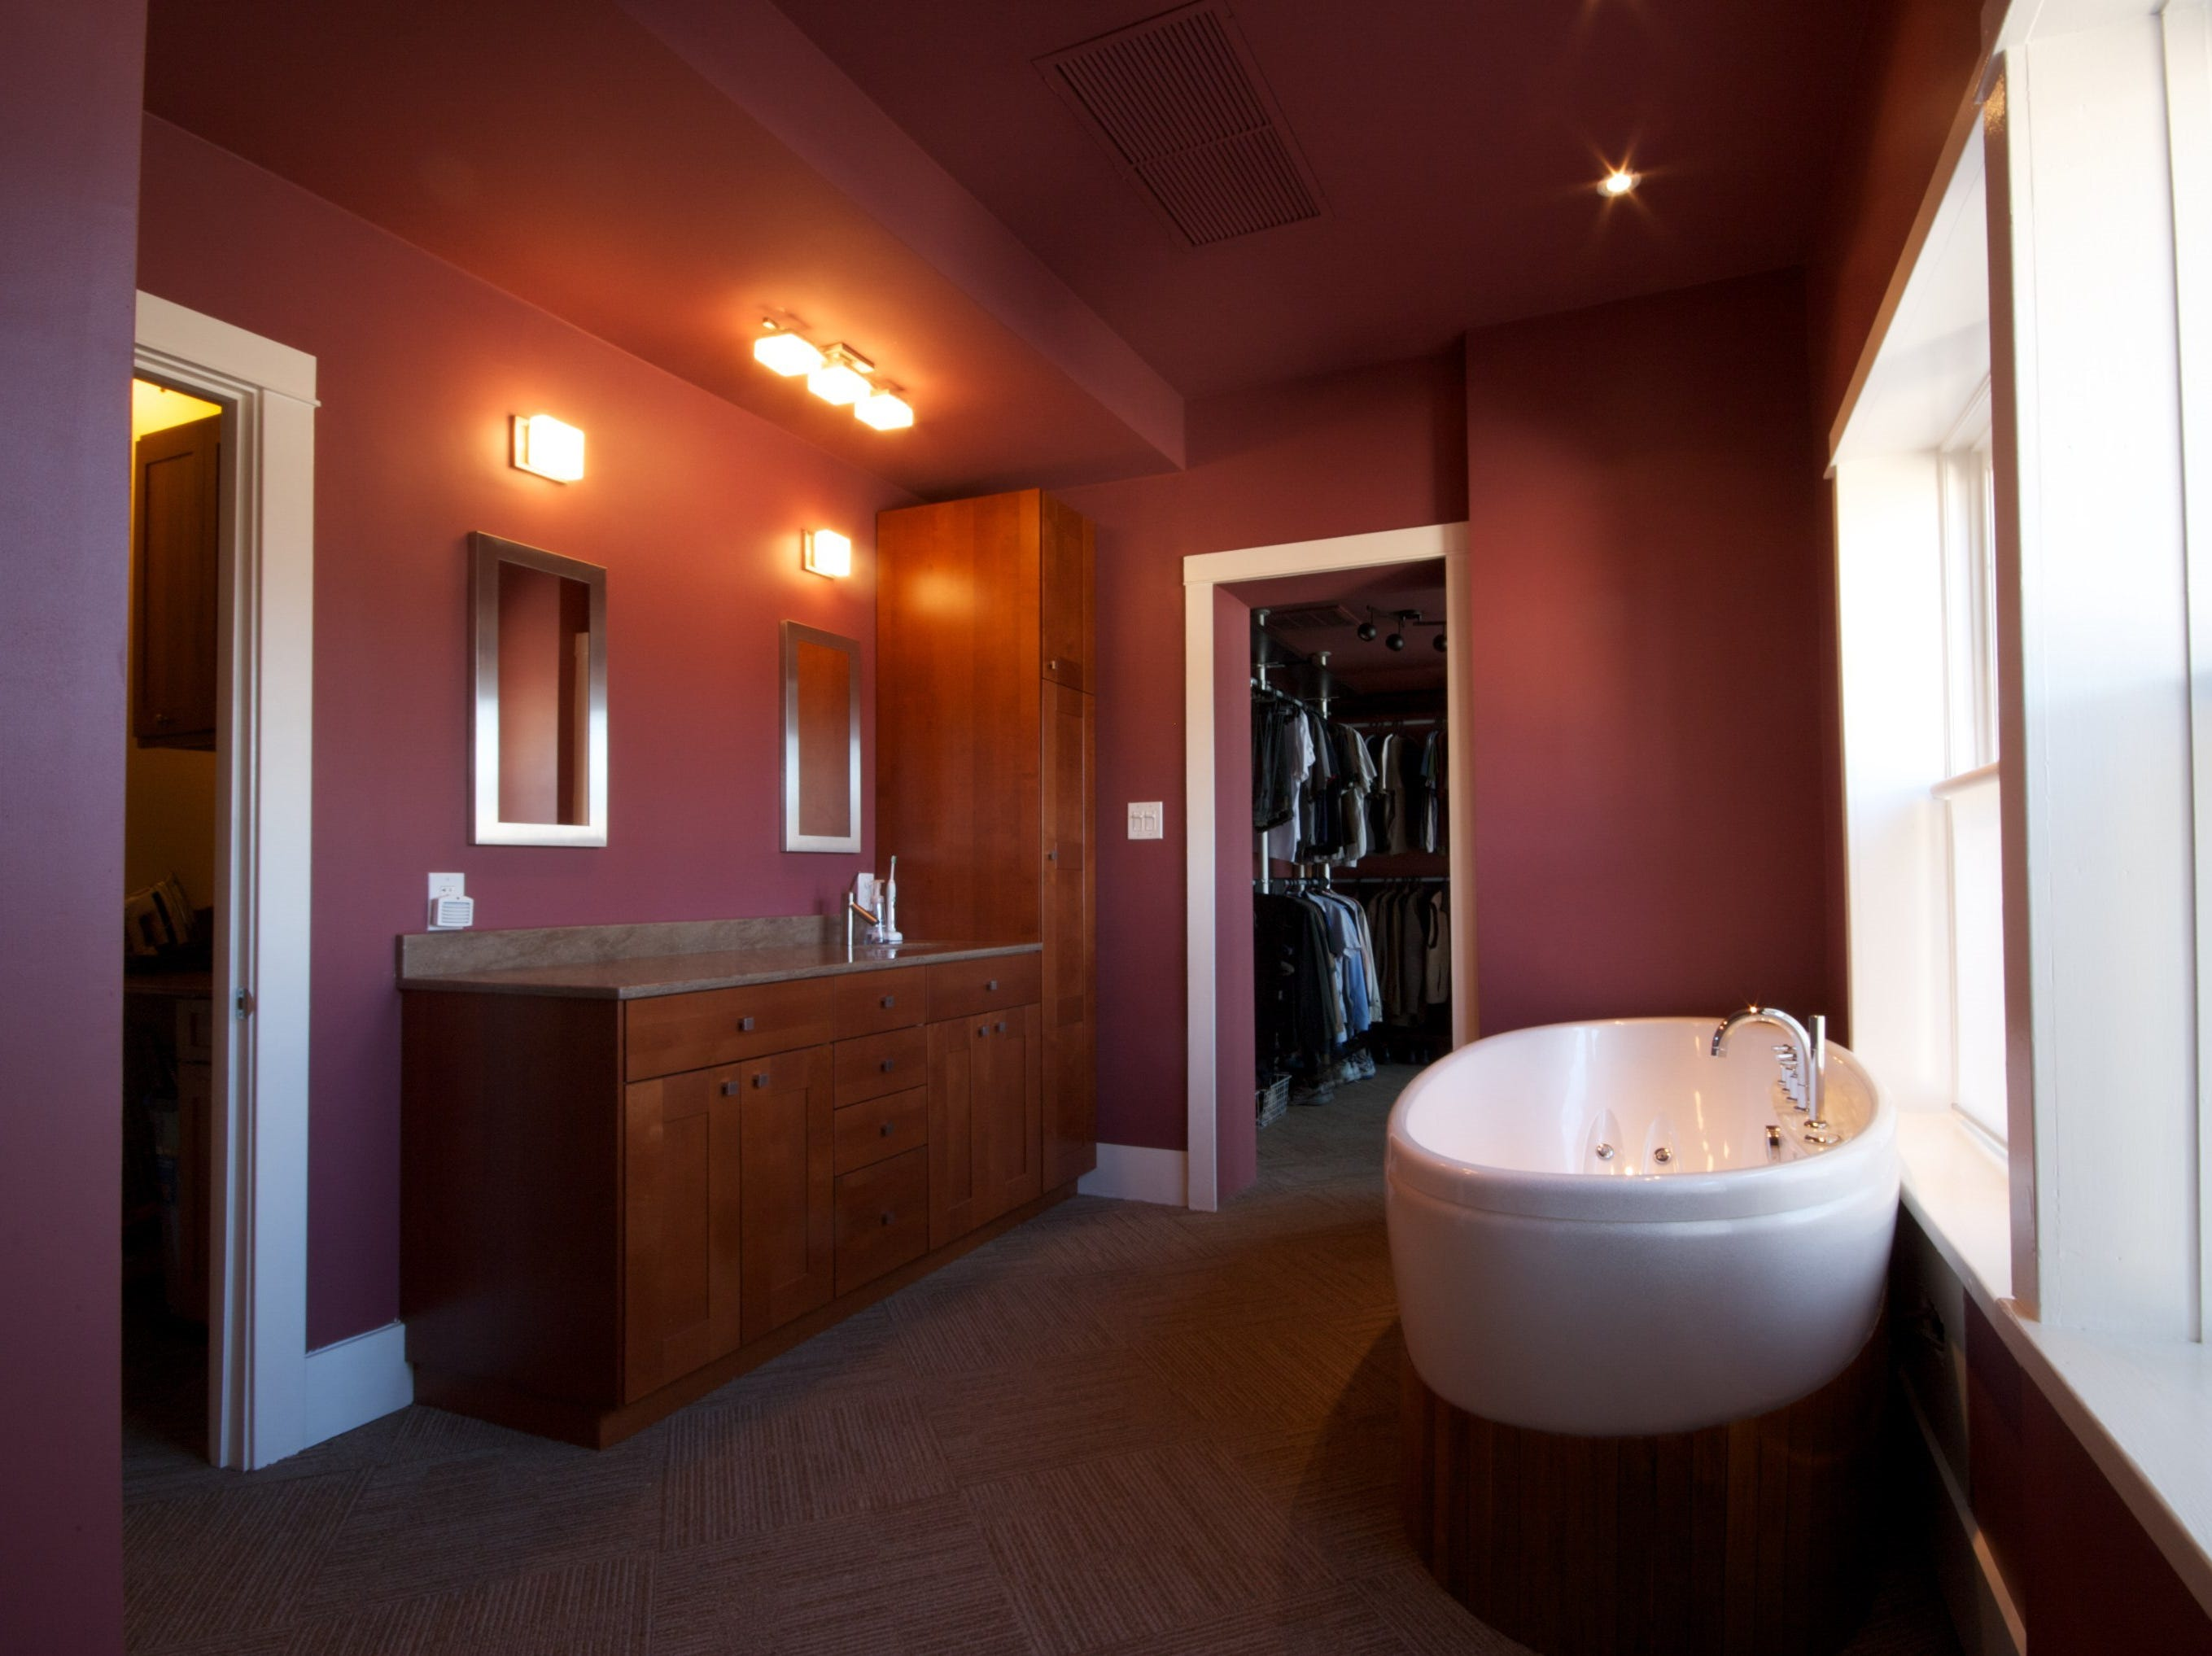 The entry to the master suite is actually through the master bathroom, which features a standalone, jetted tub.